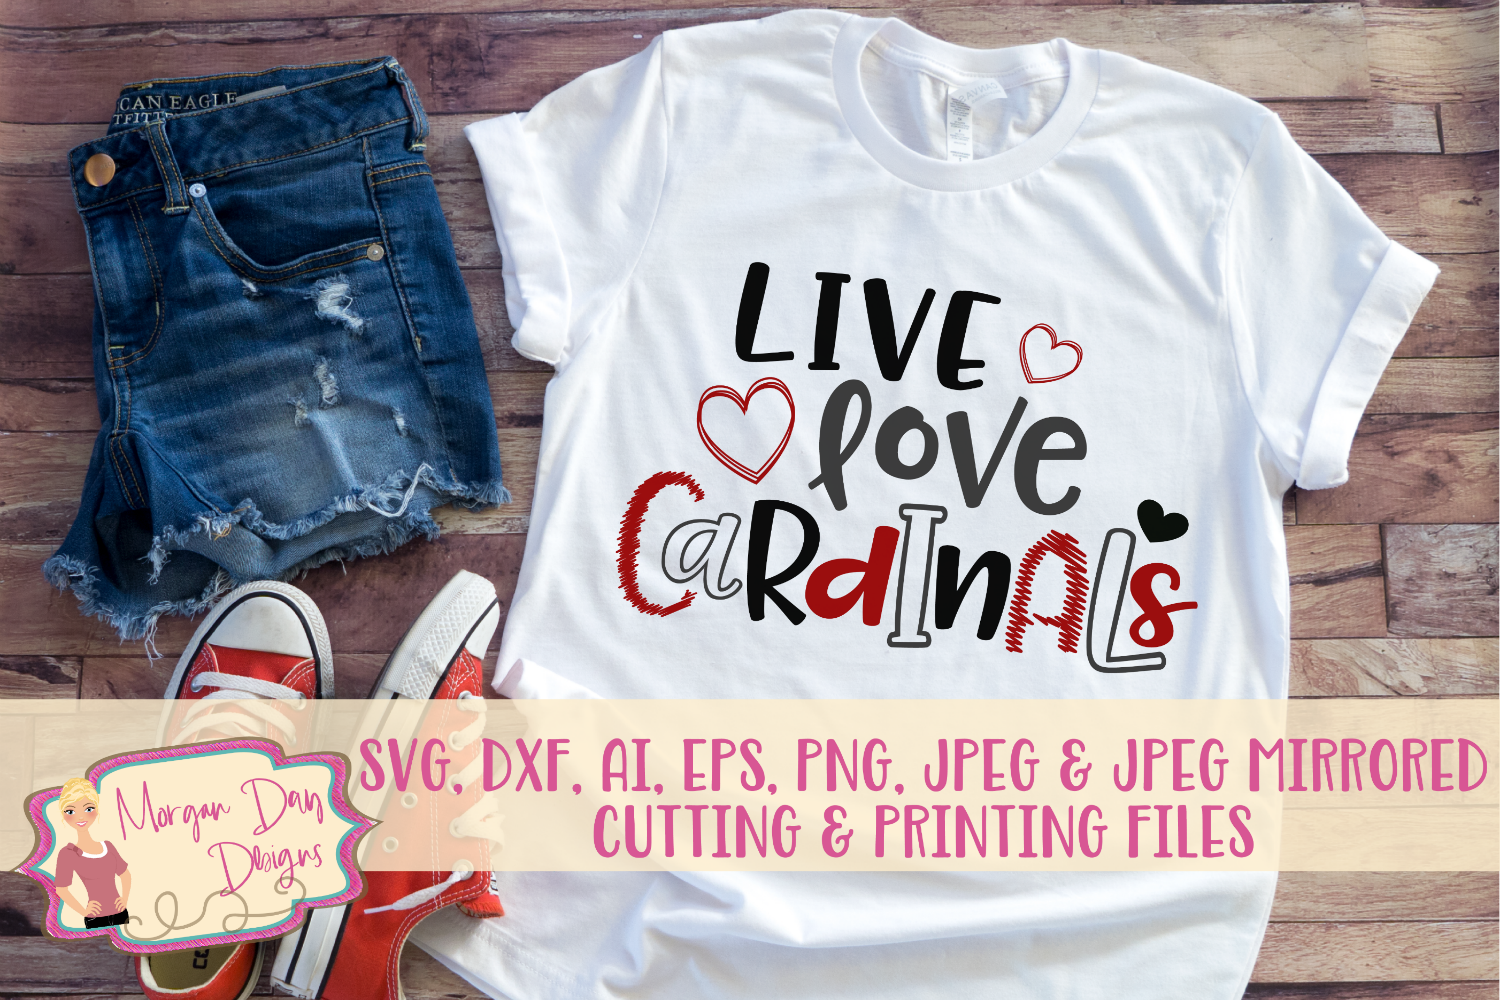 Live Love Cardinals SVG, DXF, AI, EPS, PNG, JPEG example image 1